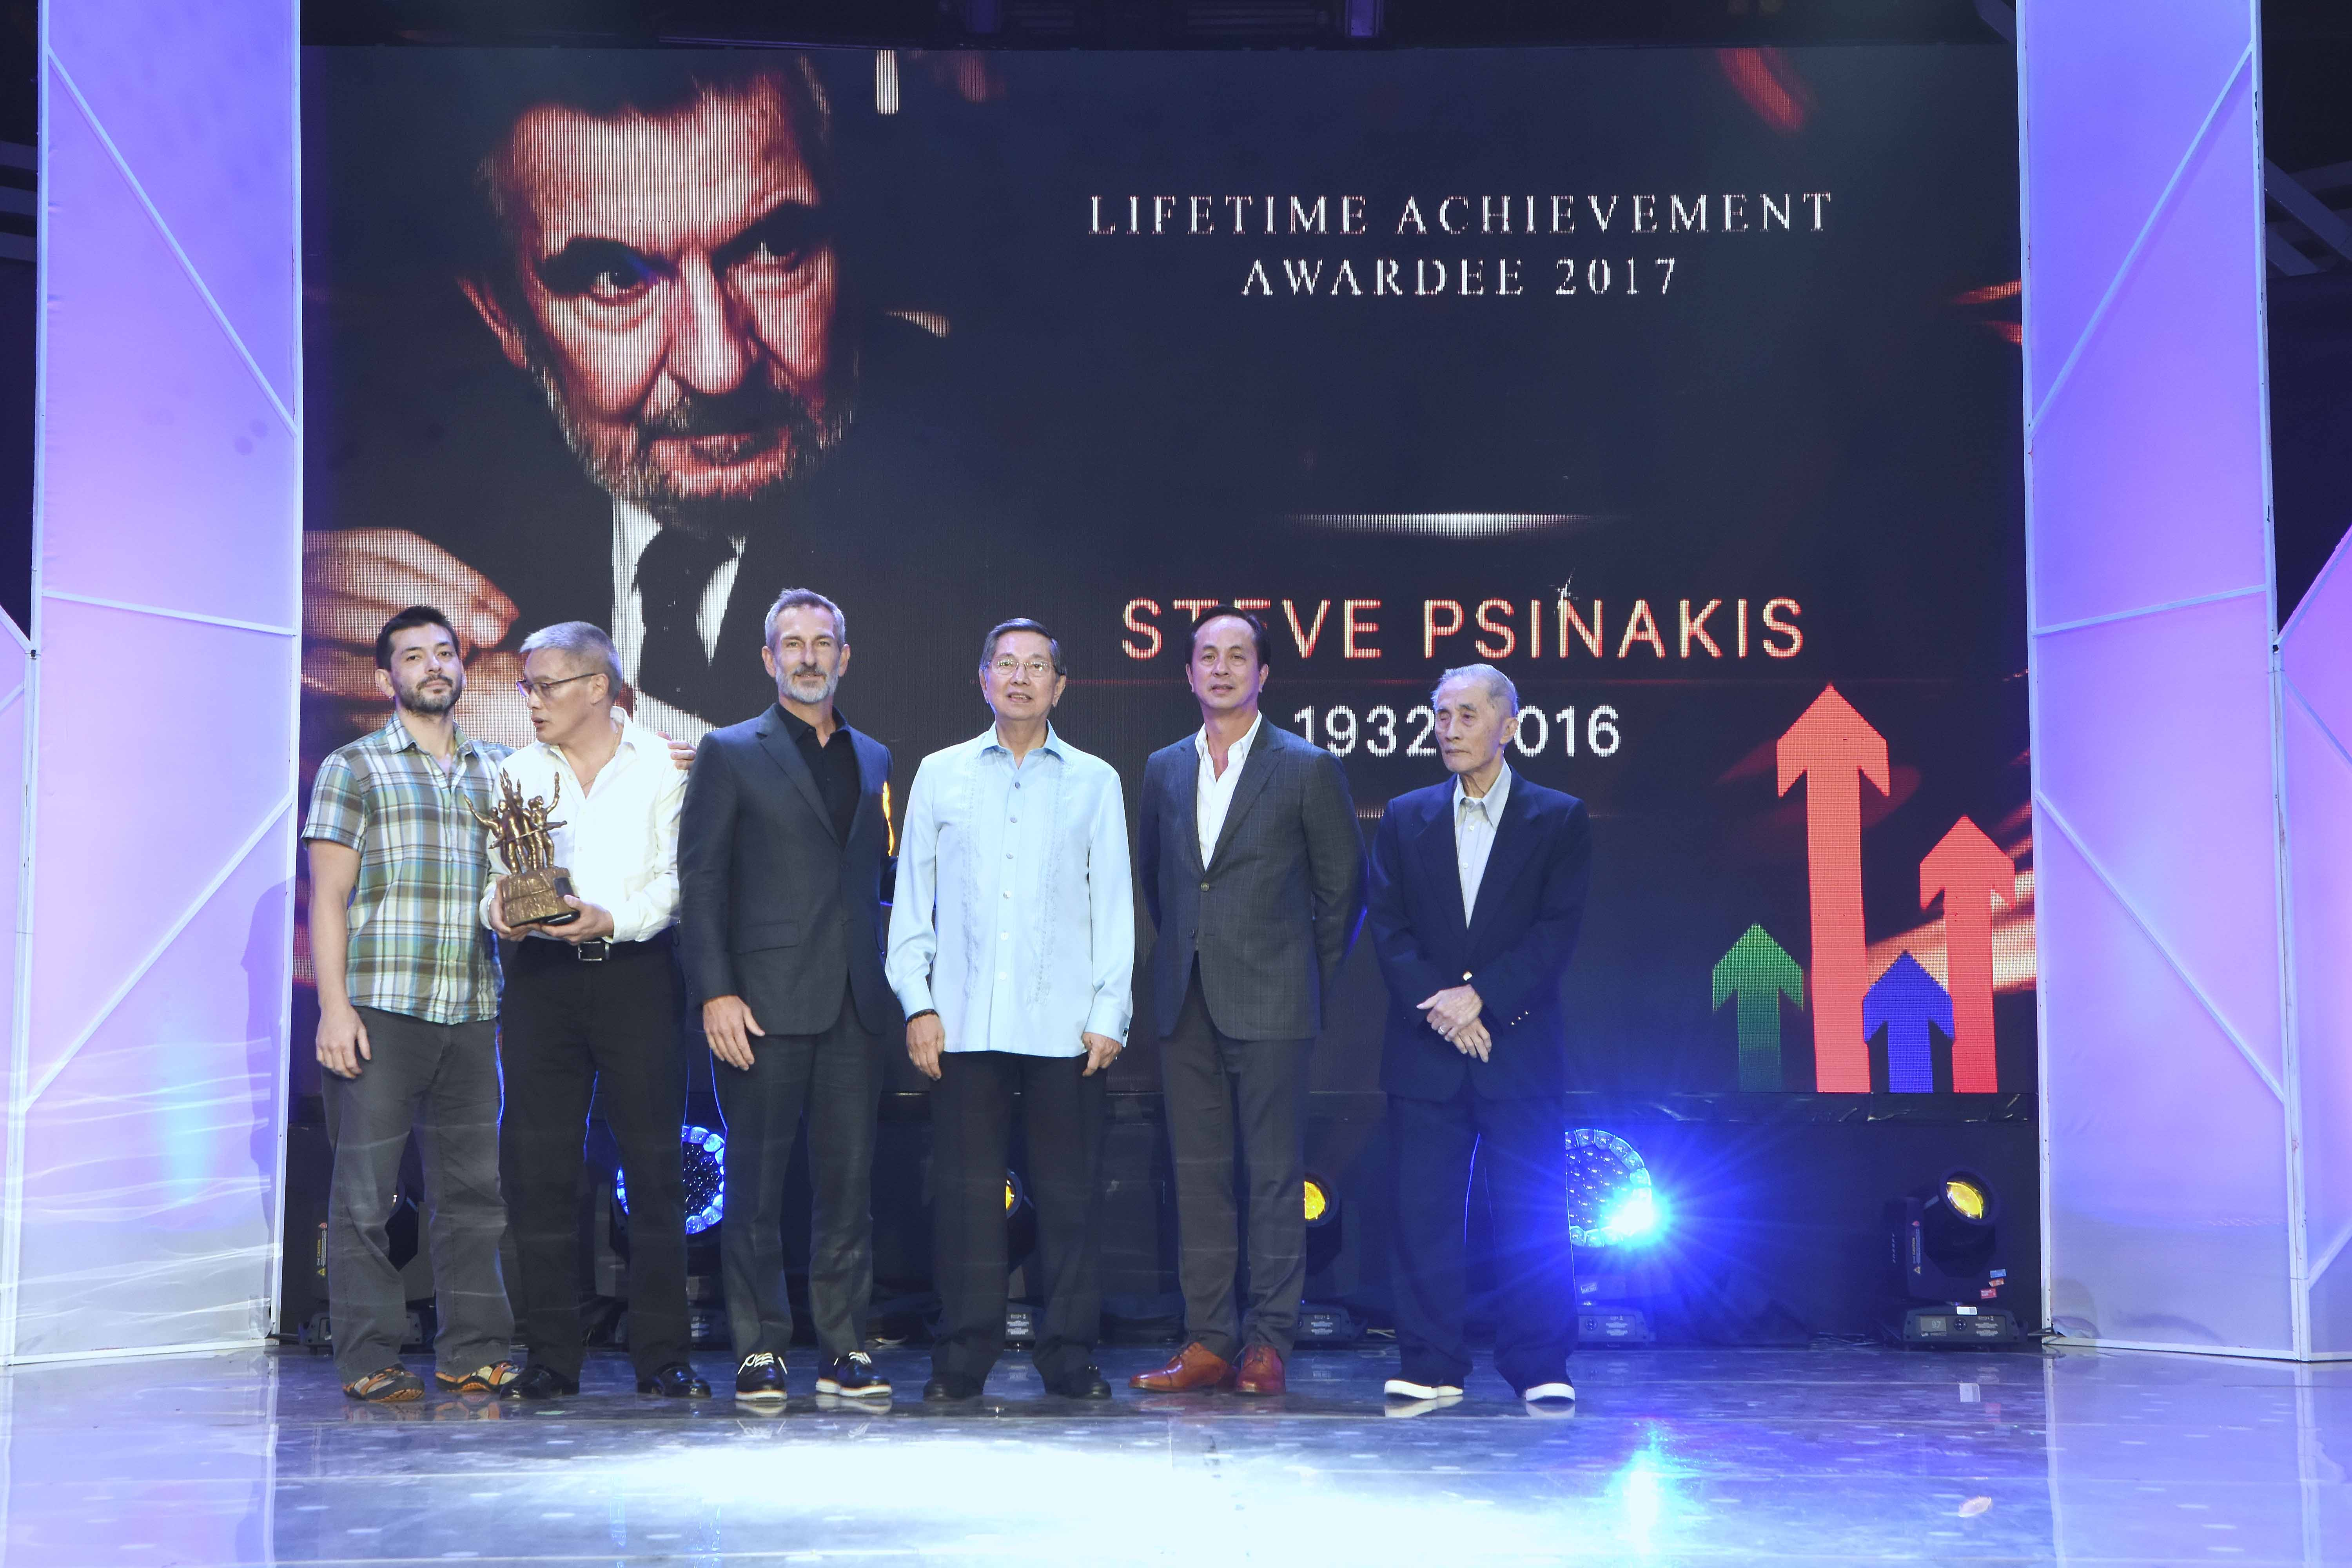 Steve Psinakis: Fifty years of serving the Lopez Group and the country he made his own